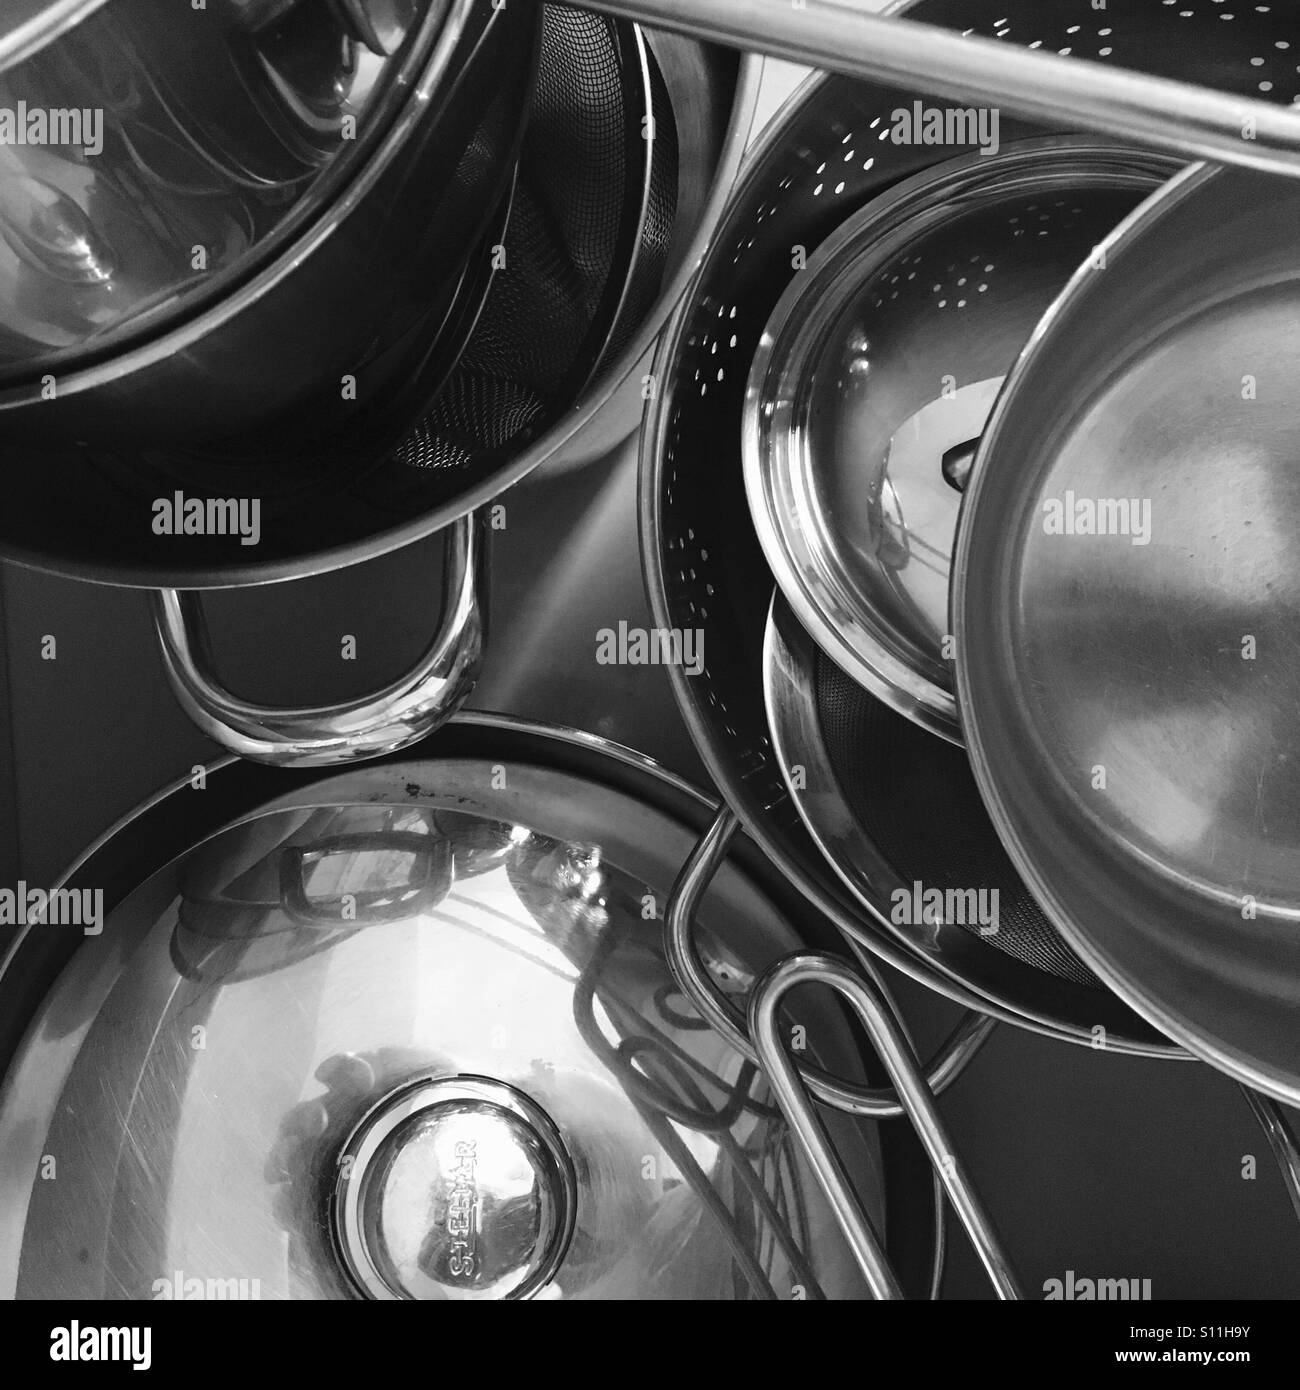 Collection of saucepans and kitchen utensils - Stock Image